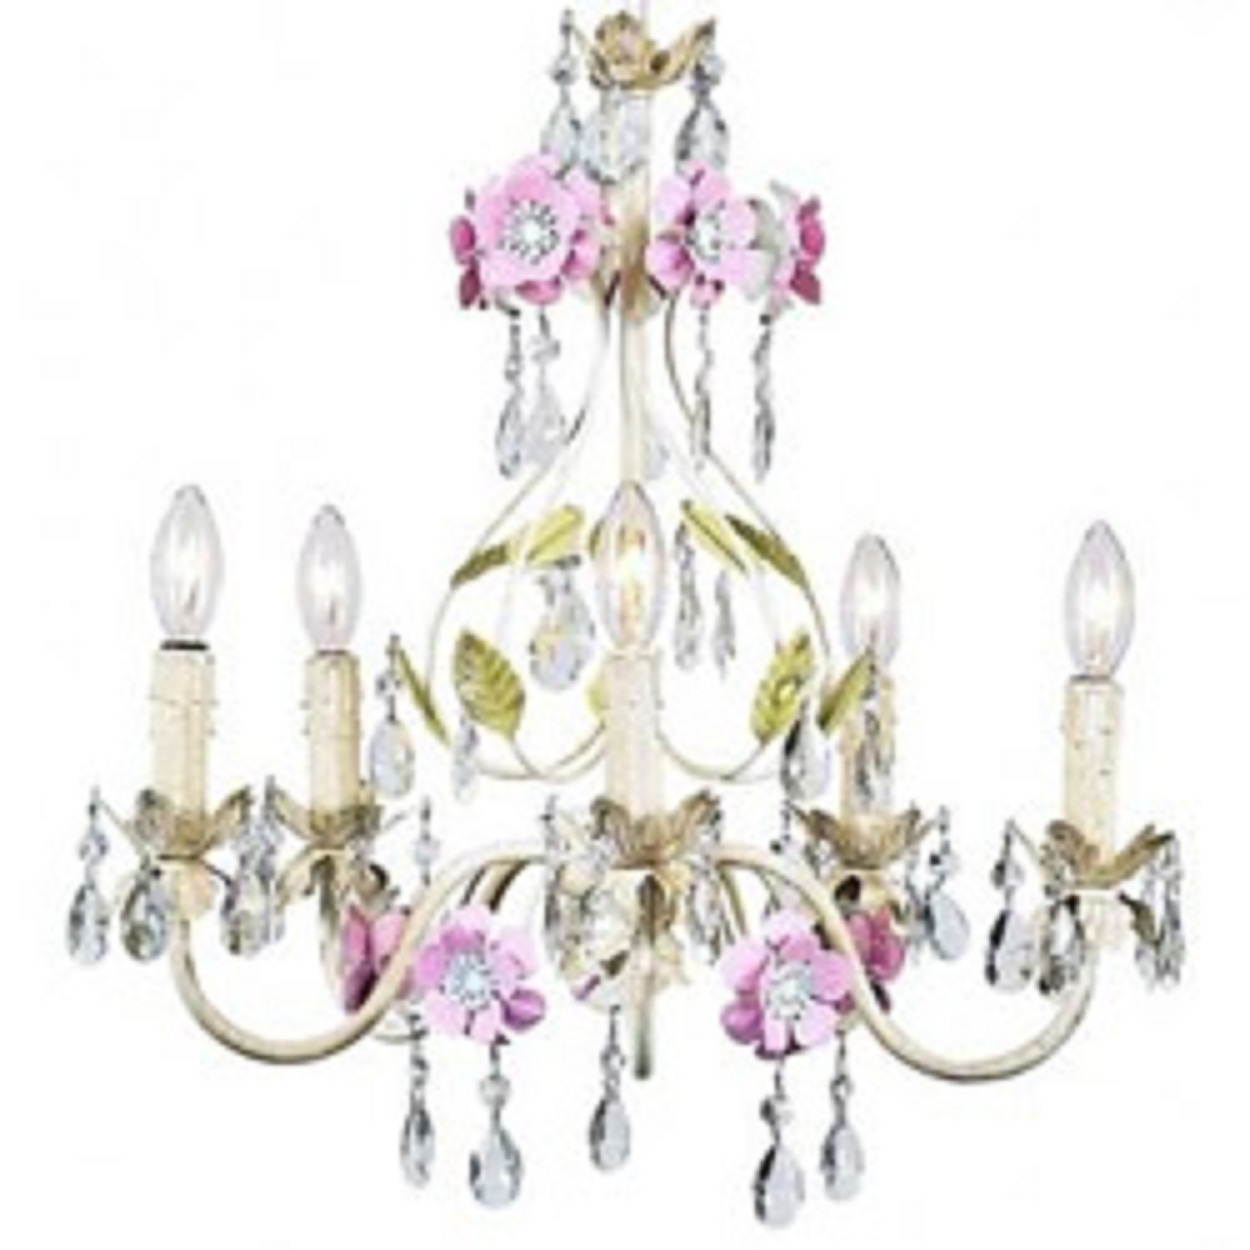 antique shabby chic chandelier of pastel floral with dangling crystals and be chandeliers. Black Bedroom Furniture Sets. Home Design Ideas